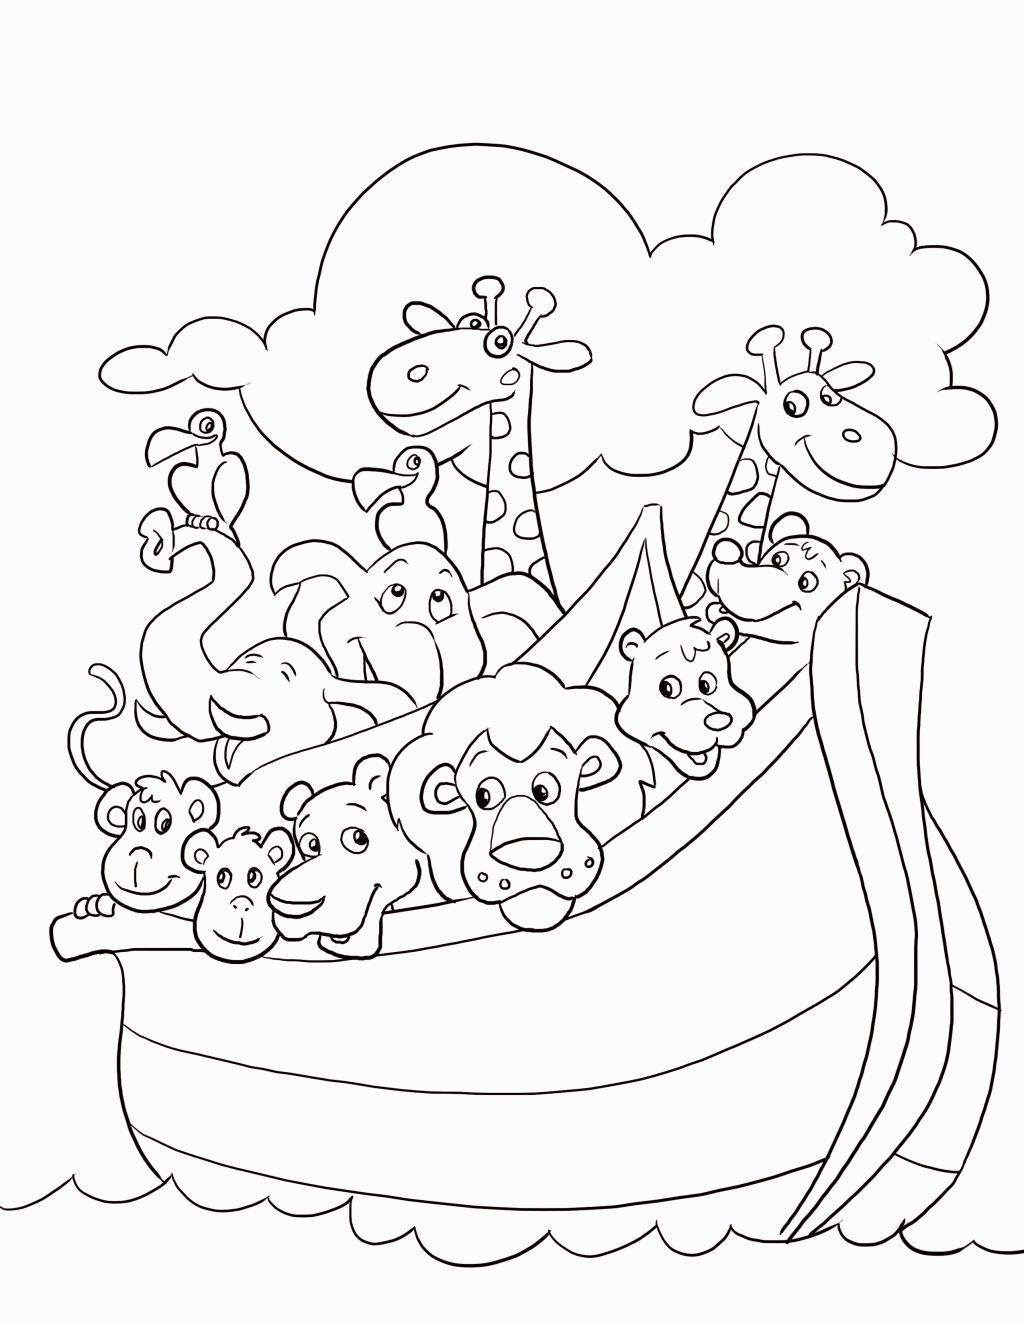 christian children coloring pages free - photo#42